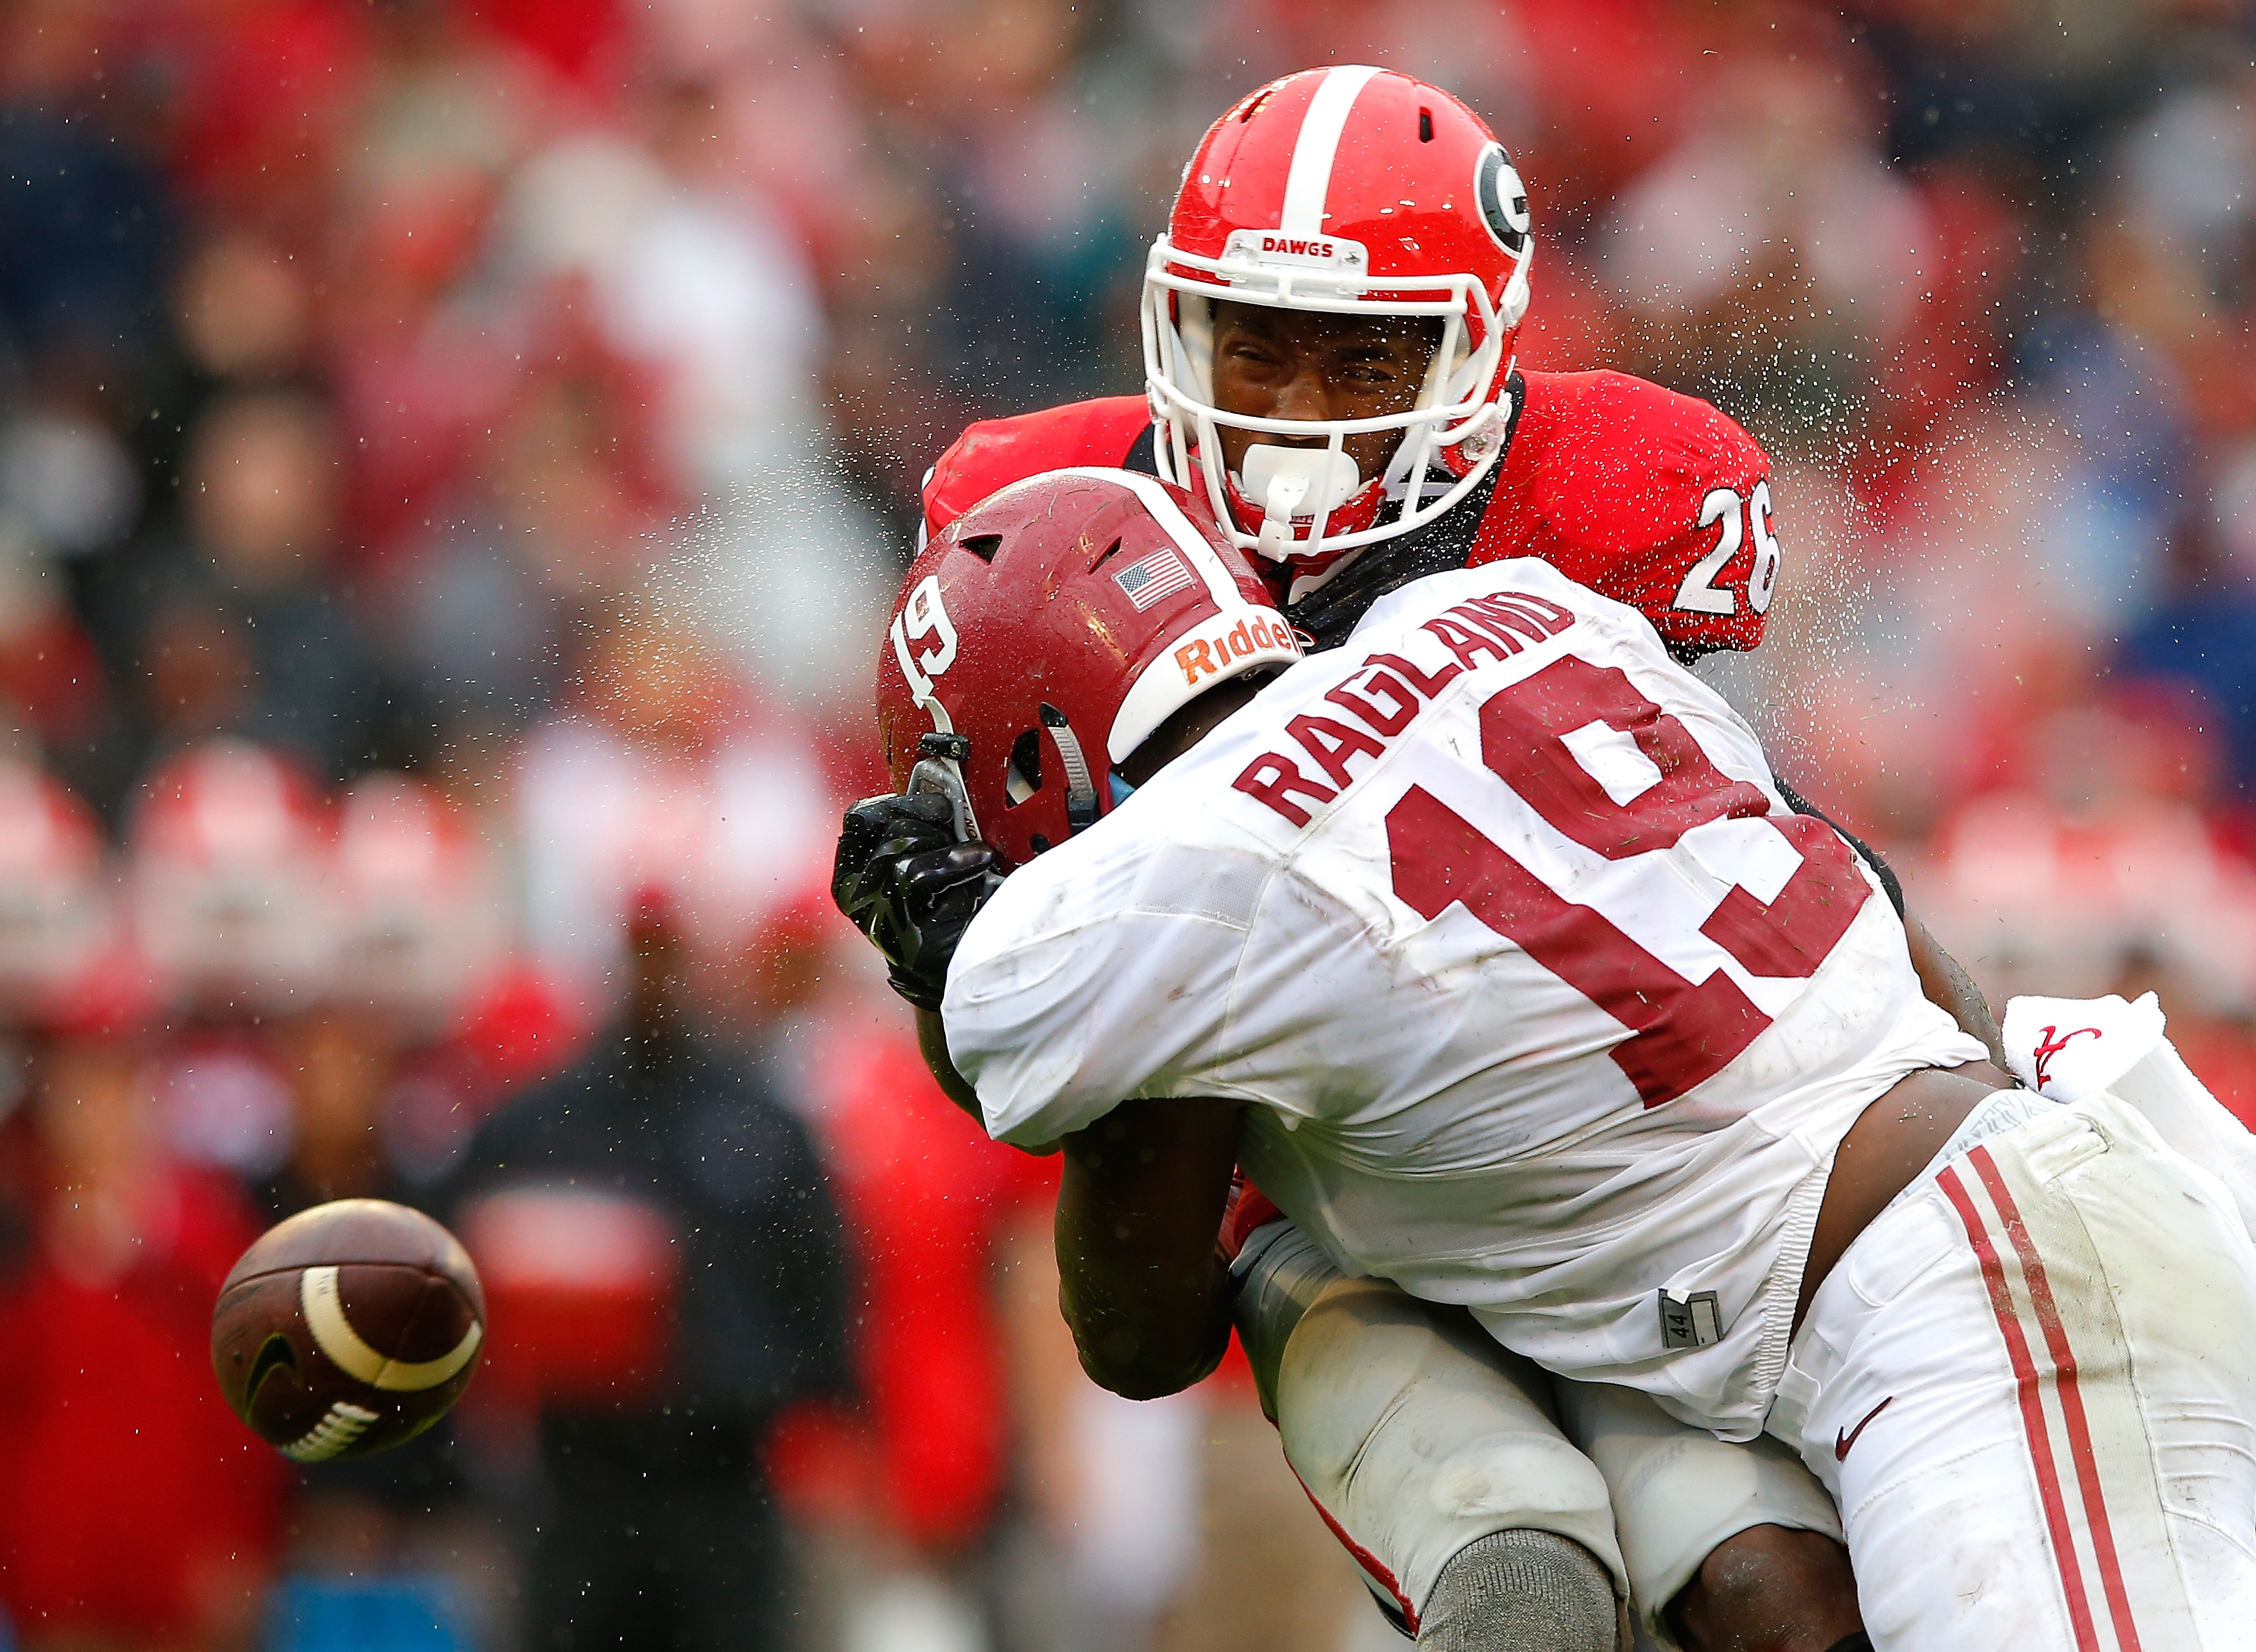 ATHENS, GA - OCTOBER 03:  Reggie Ragland #19 of the Alabama Crimson Tide breaks up a reception as he tackles Malcolm Mitchell #26 of the Georgia Bulldogs at Sanford Stadium on October 3, 2015 in Athens, Georgia.  (Photo by Kevin C. Cox/Getty Images)